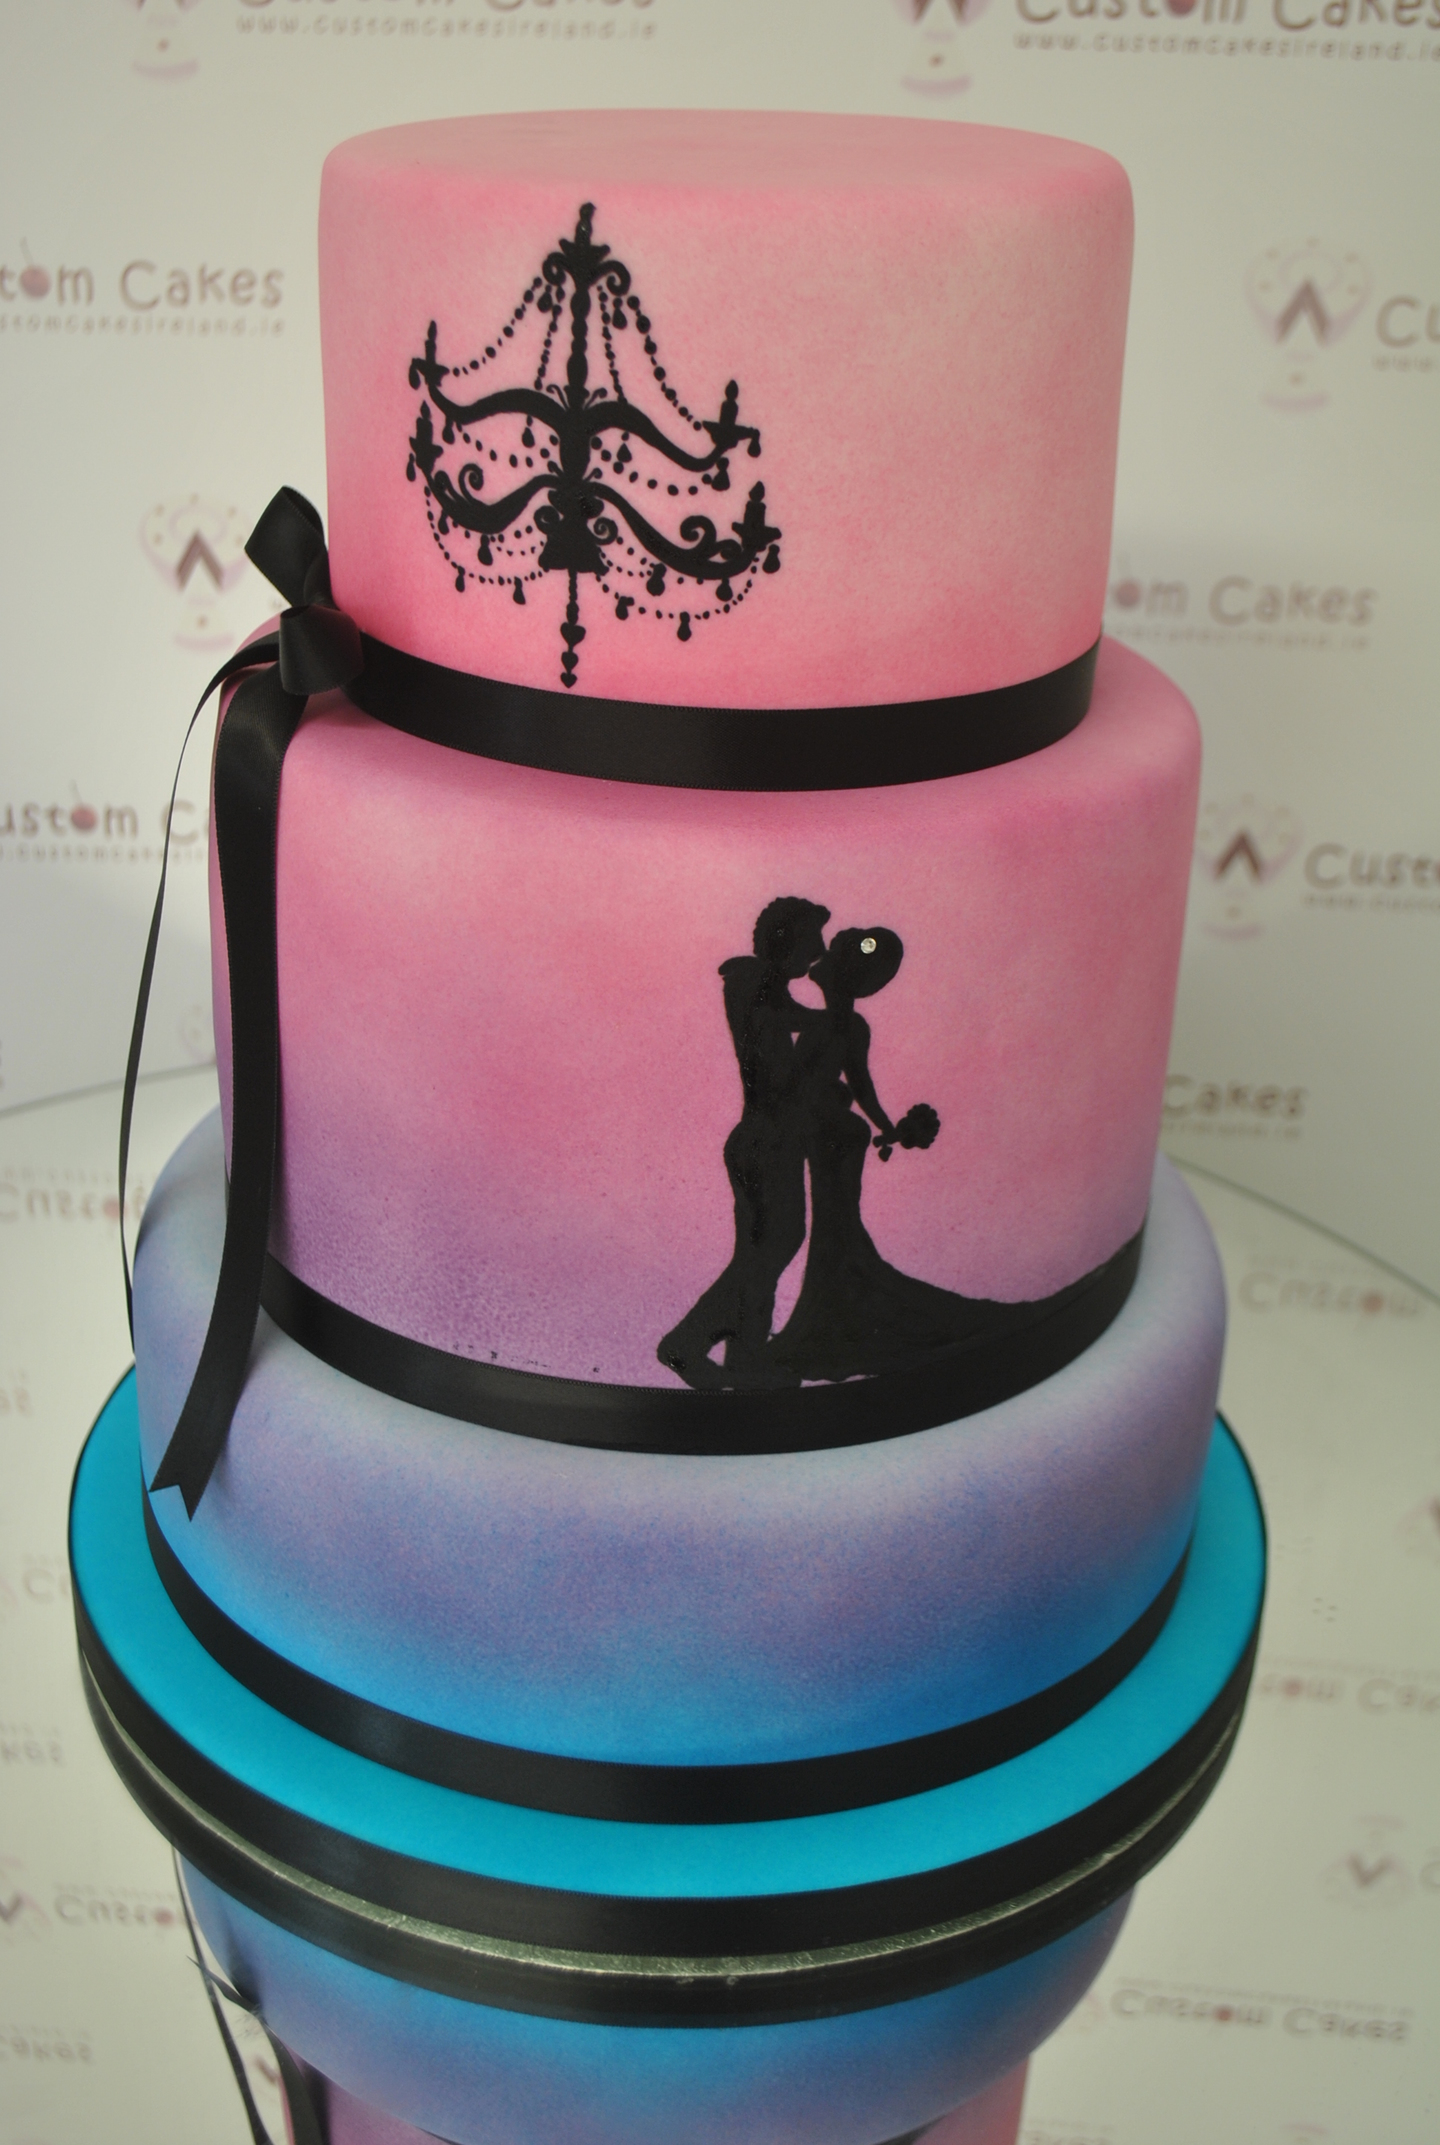 Custom Cakes™ Louth | Bakers and Cakers